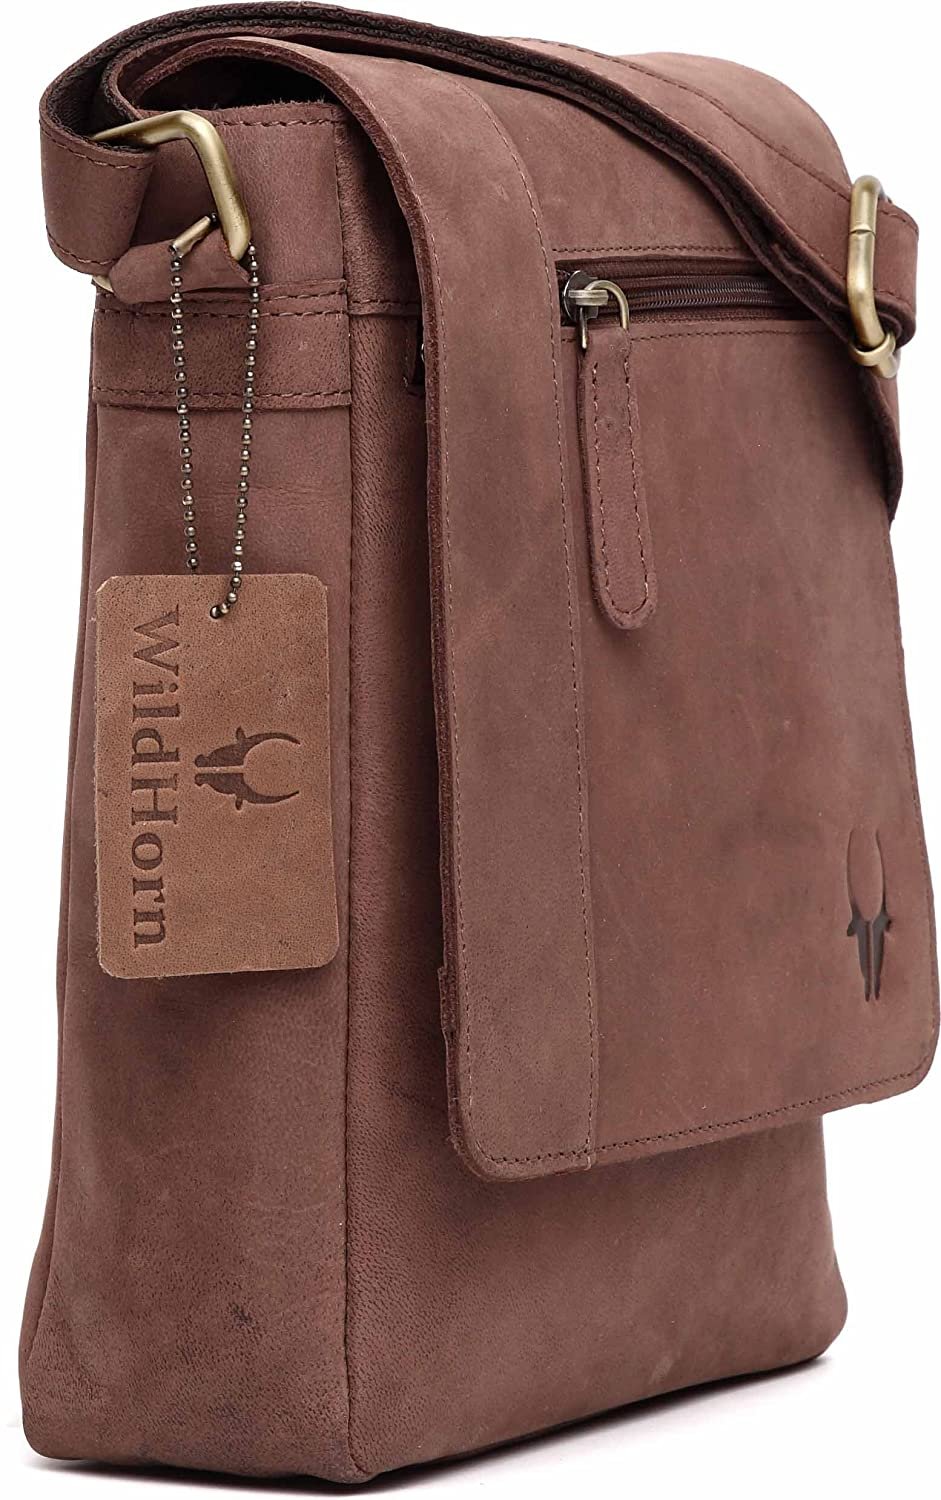 WildHorn Leather 21.59 cms Brown Messenger Bag (MB205 Brown Hunter)   Amazon.in  Bags 6869b631f1fd6